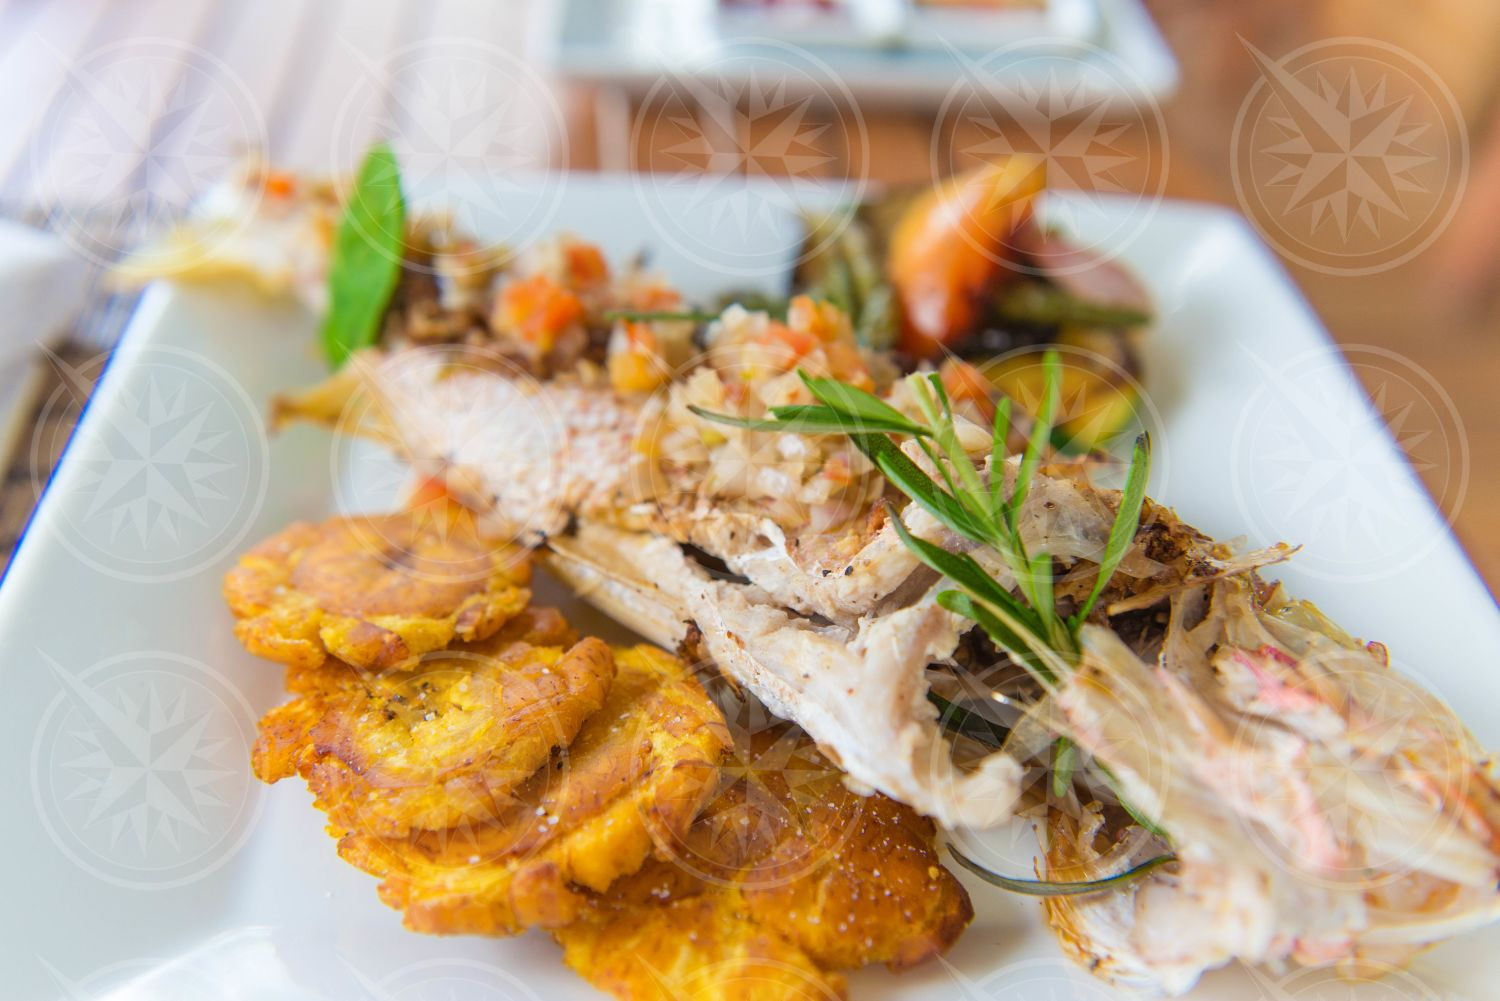 Fried fish with tostones entree